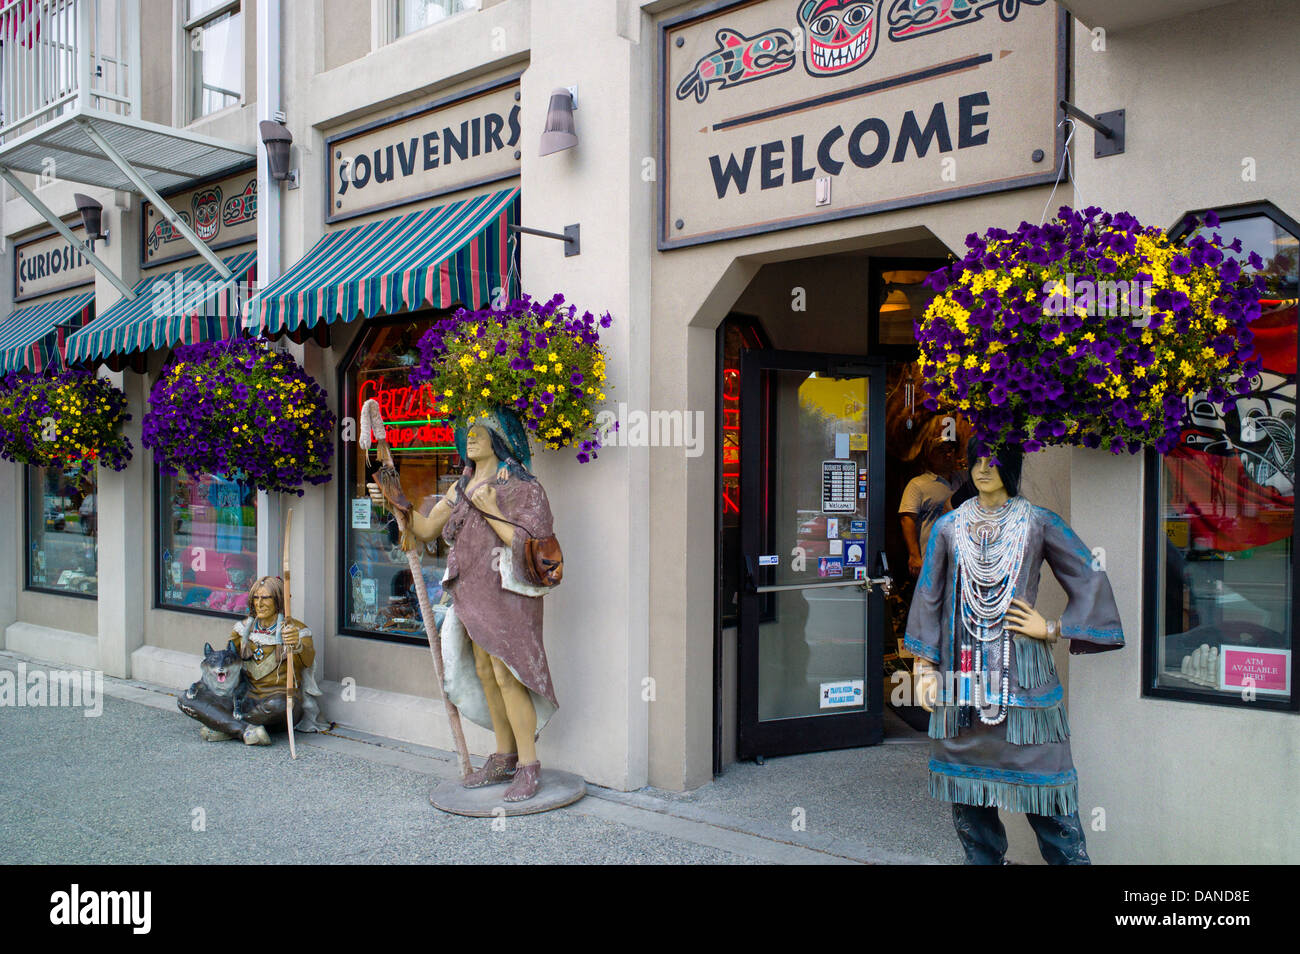 Lifesize statues of Native American Indians decorate the Grizzly's Unique Alaskan Gifts store, Anchorage, Alaska, - Stock Image